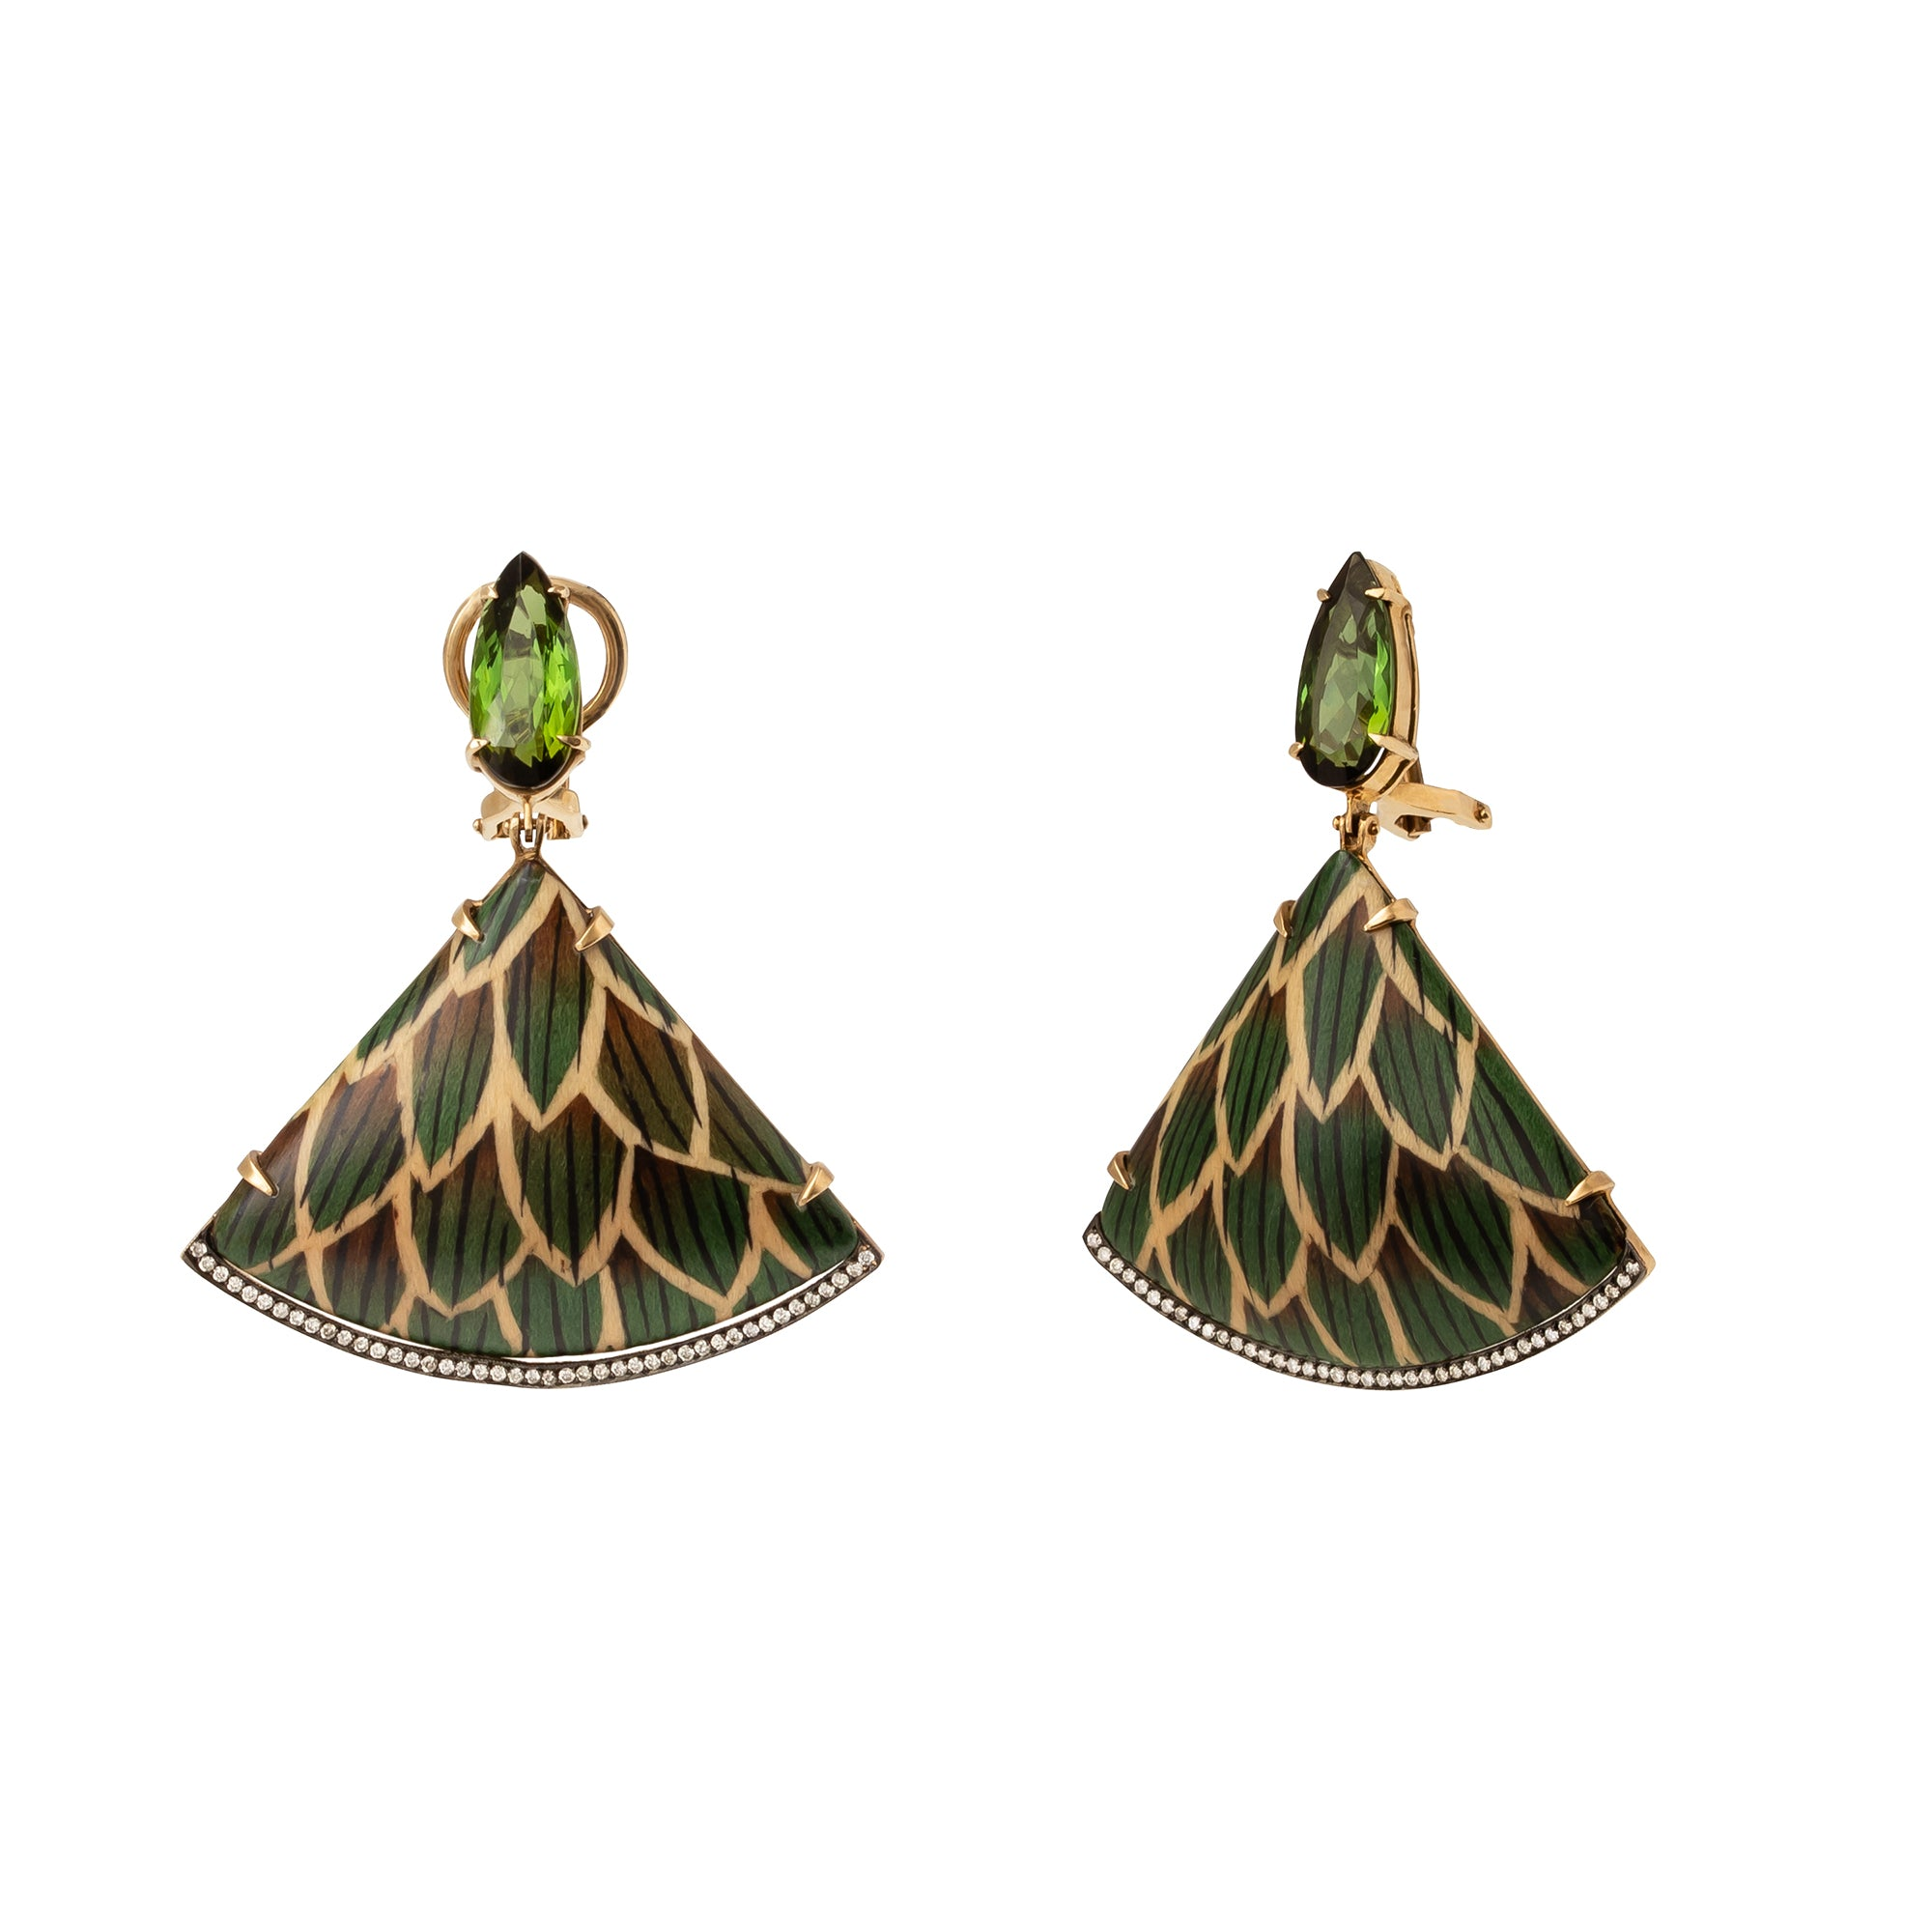 Marquetry Fan Drop Earrings - Silvia Furmanovich - Earrings | Broken English Jewelry